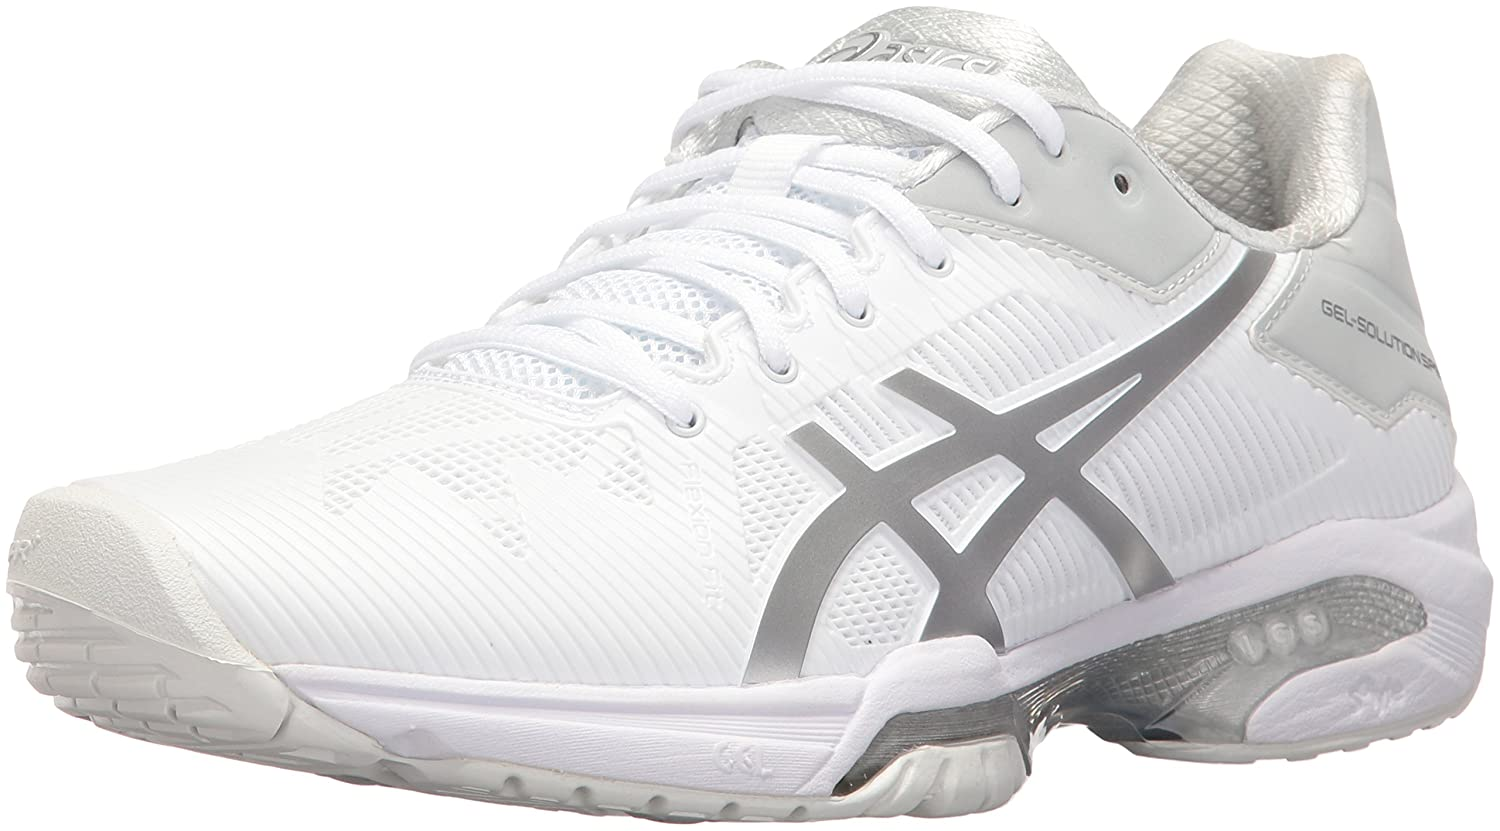 5d42b581b1 ASICS Womens Gel-Solution Speed 3 Tennis Shoe: Onitsuka Tiger: Amazon.ca:  Shoes & Handbags